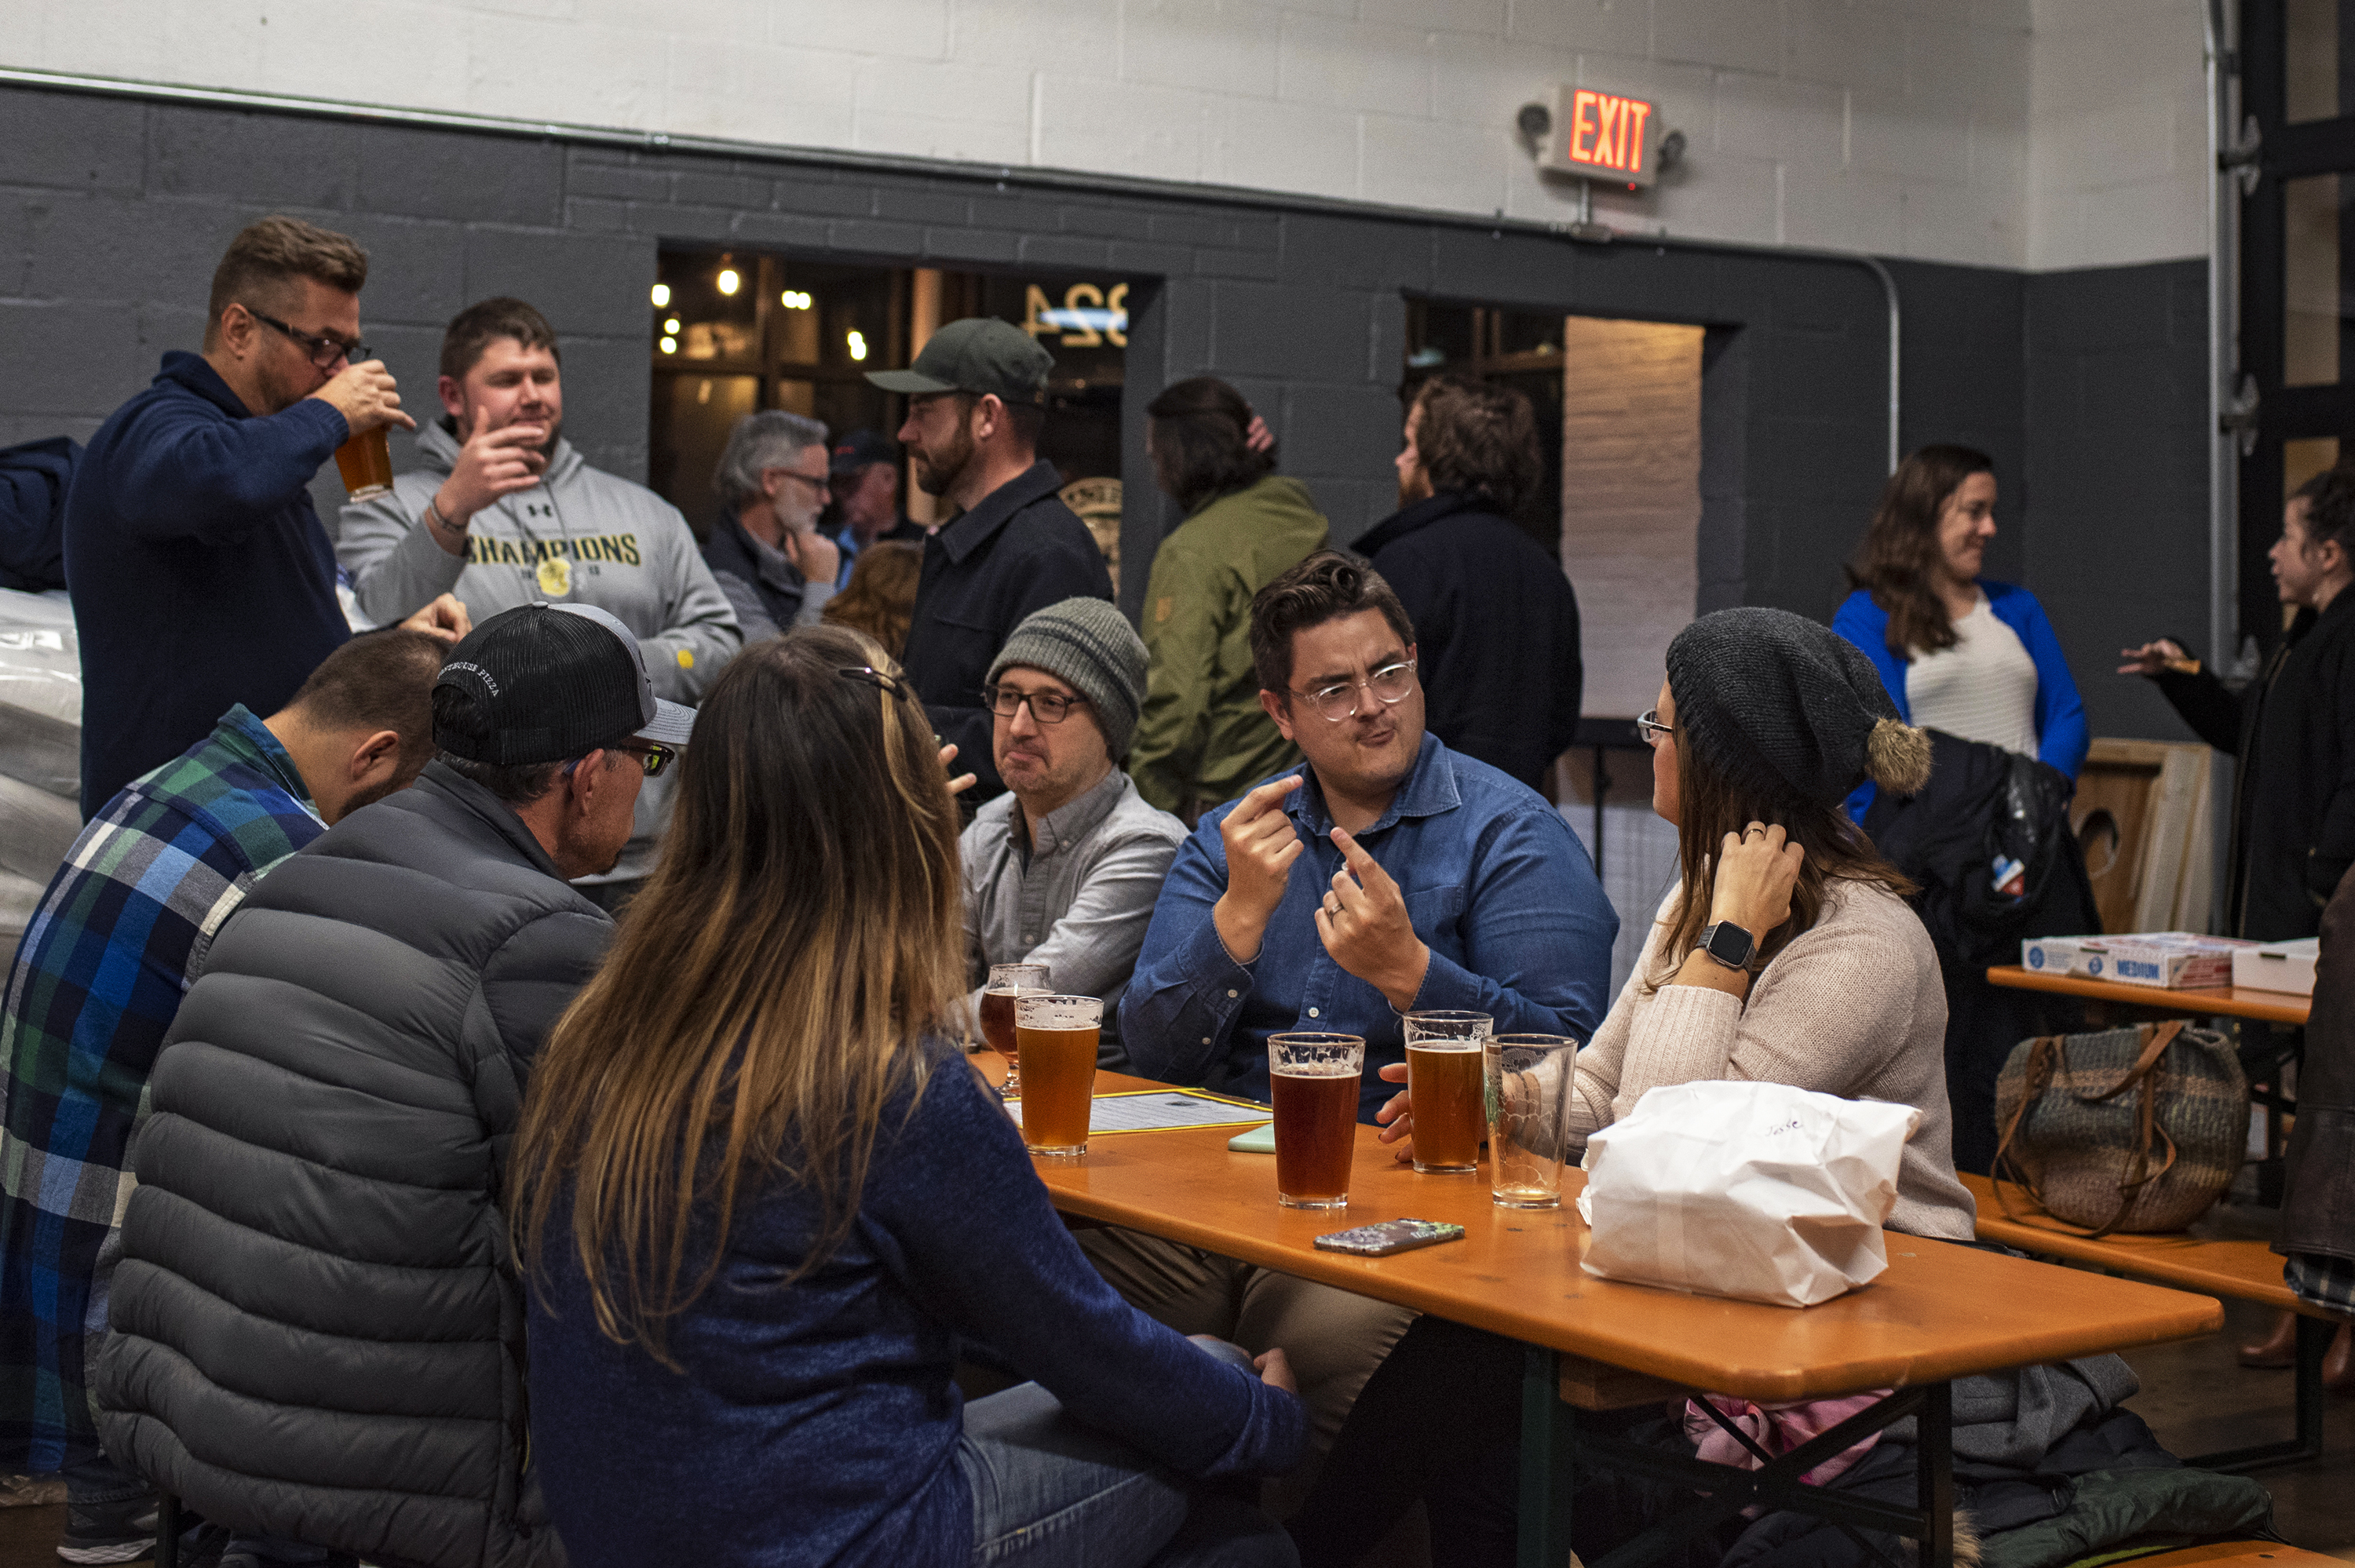 Deaf and hearing patrons communicate through a mixture of ASL, lip reading and talking to one another. Streetcar 82 Brewing Co. was founded by alumni from Gallaudet University to create a community for both hearing and deaf people who admire locally brewed beer in Hyattsville, Md.